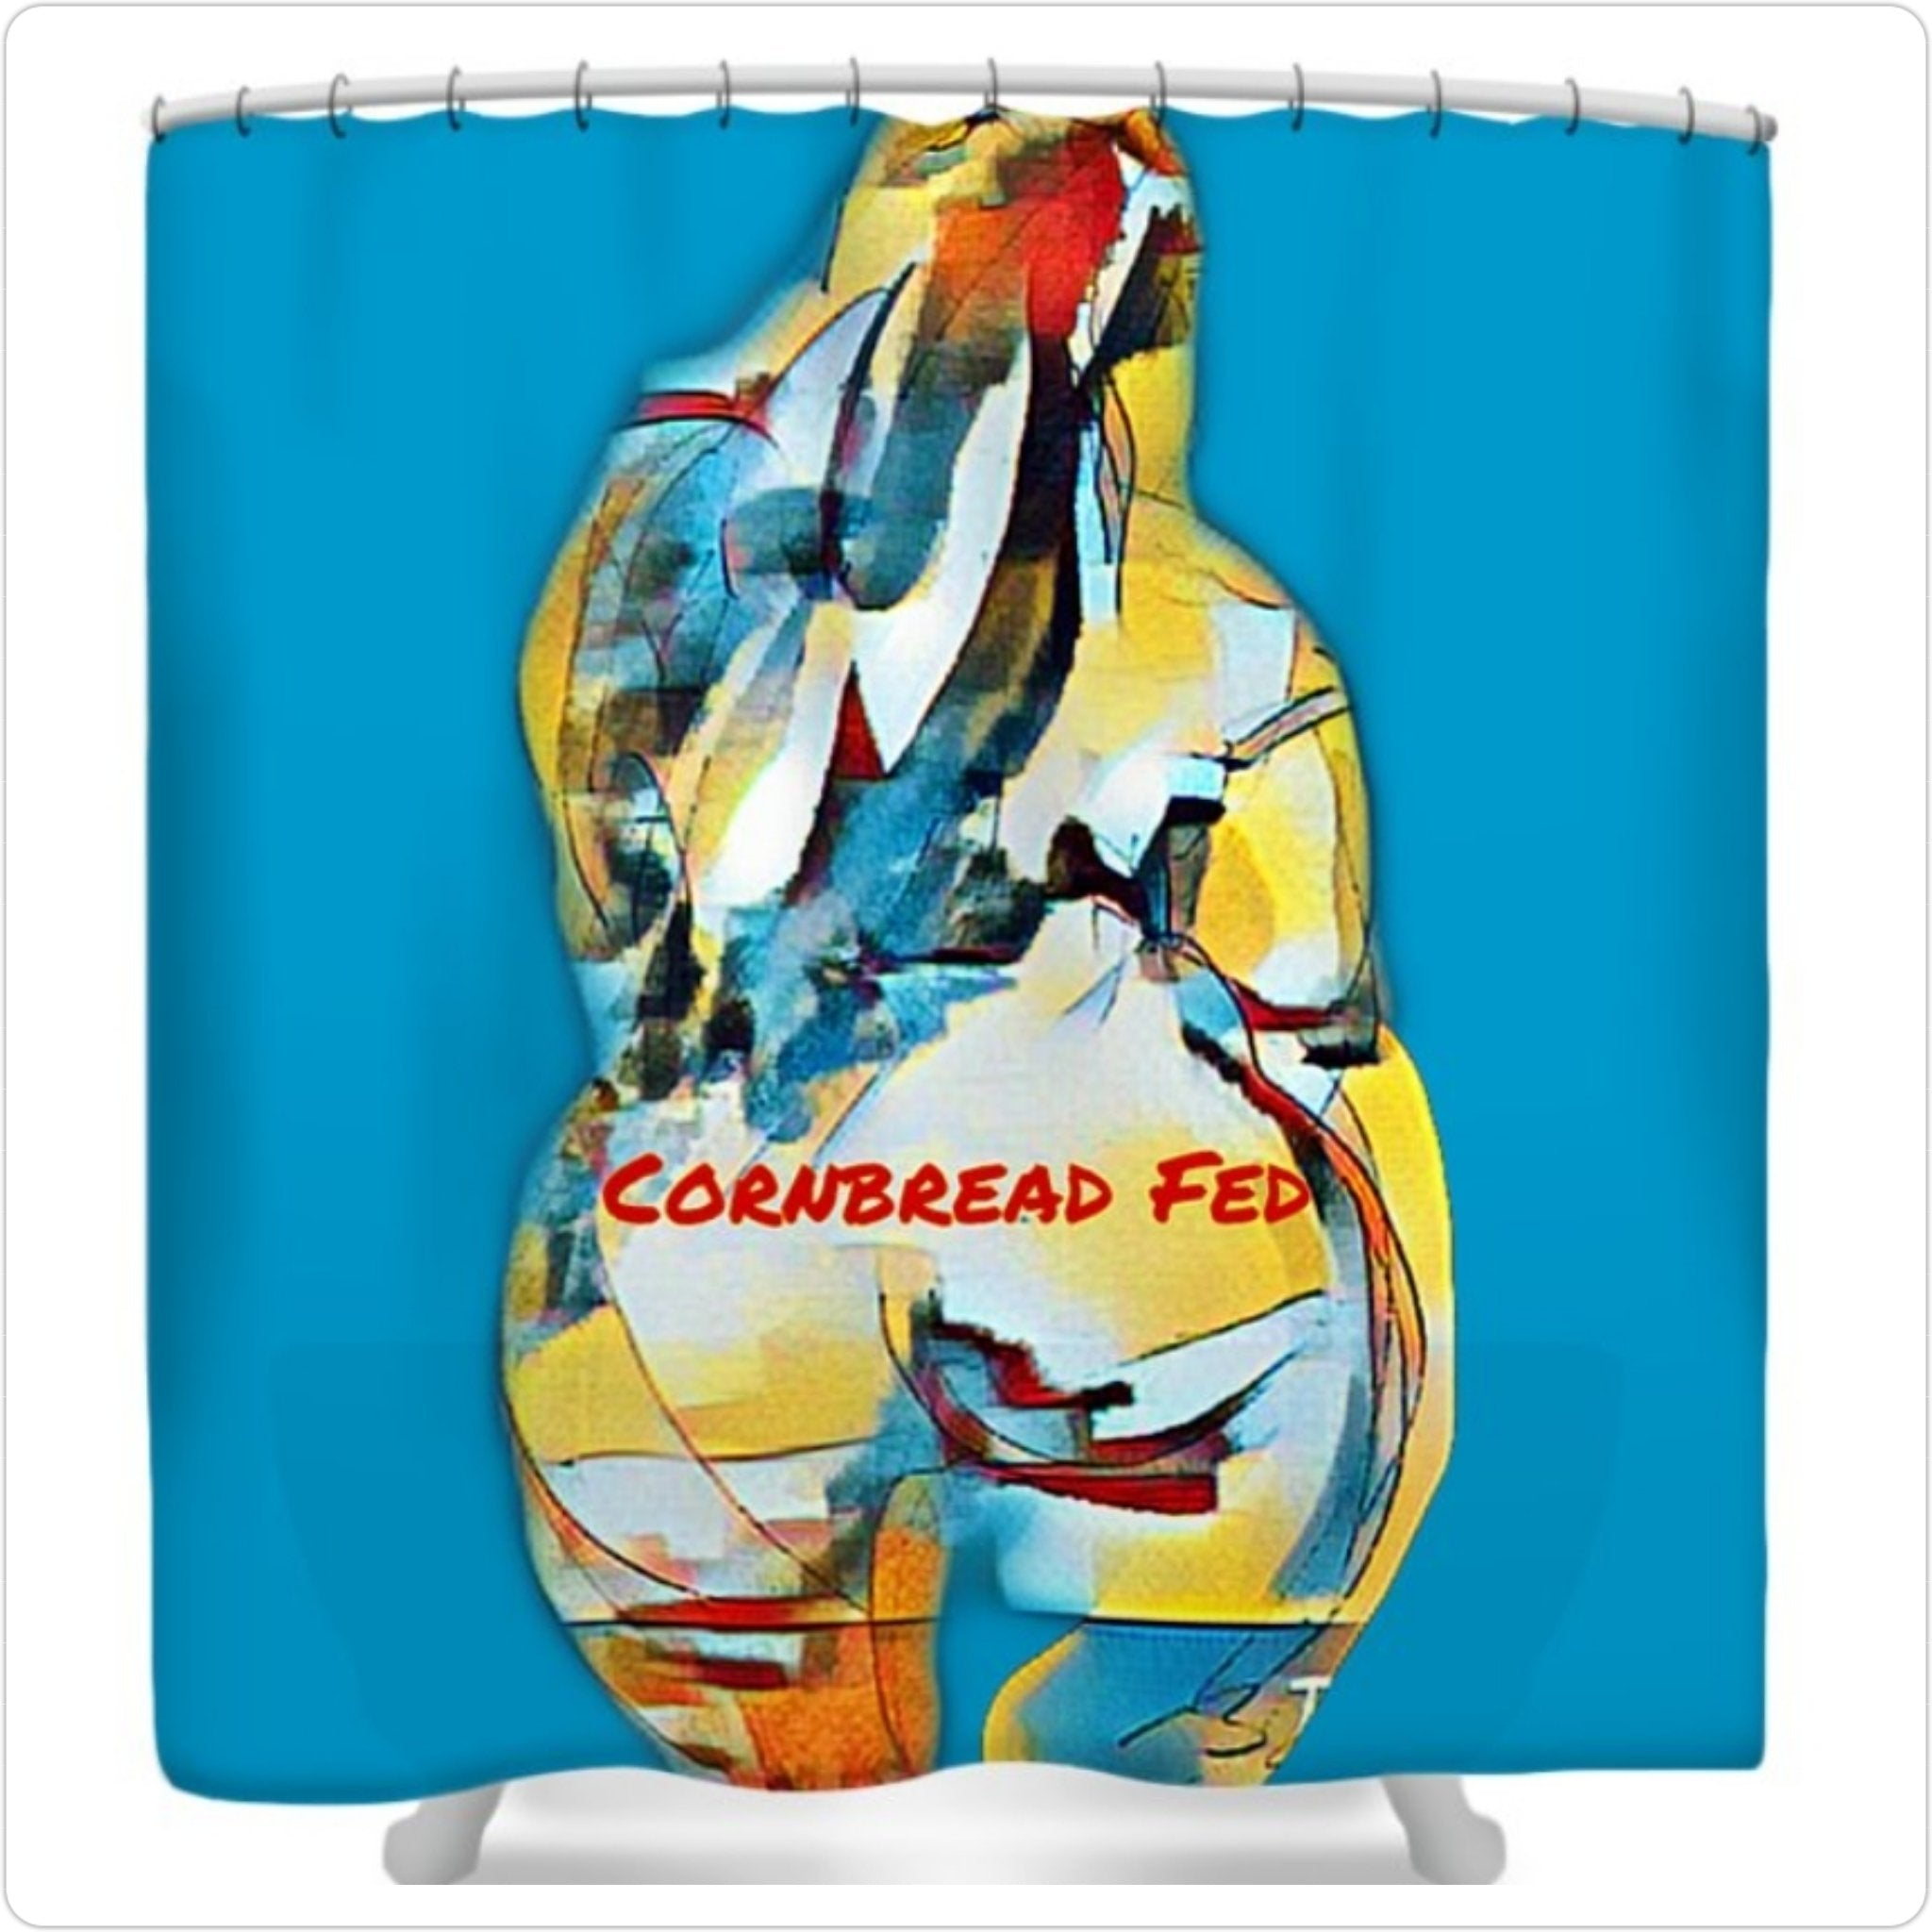 Cornbread Fed Shower Curtain